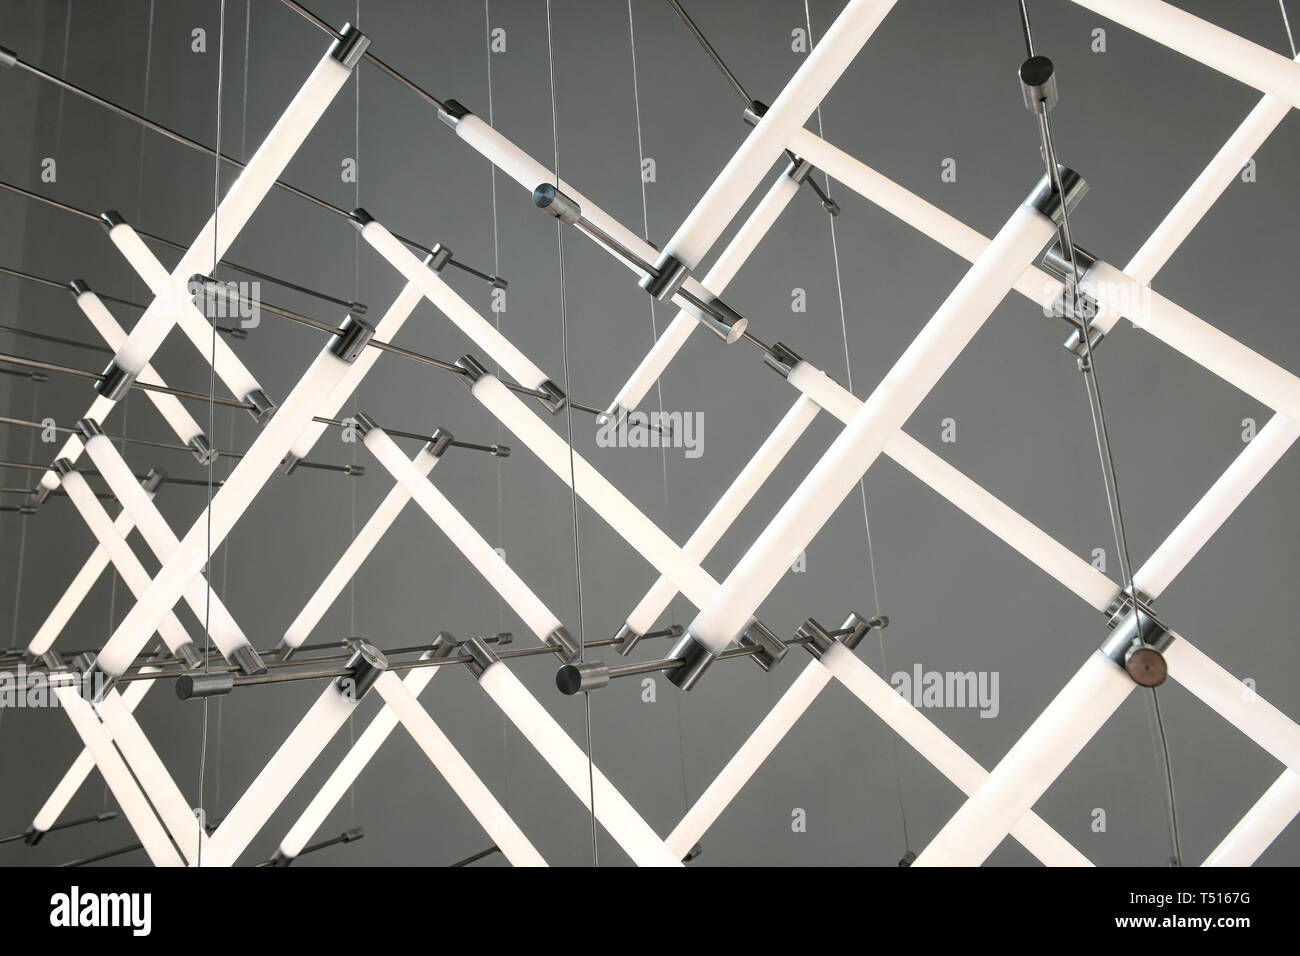 https www alamy com close up on modern neon lighting design with white stick lamps hanging on thin metal threads viewed in close up against grey wall image244045300 html